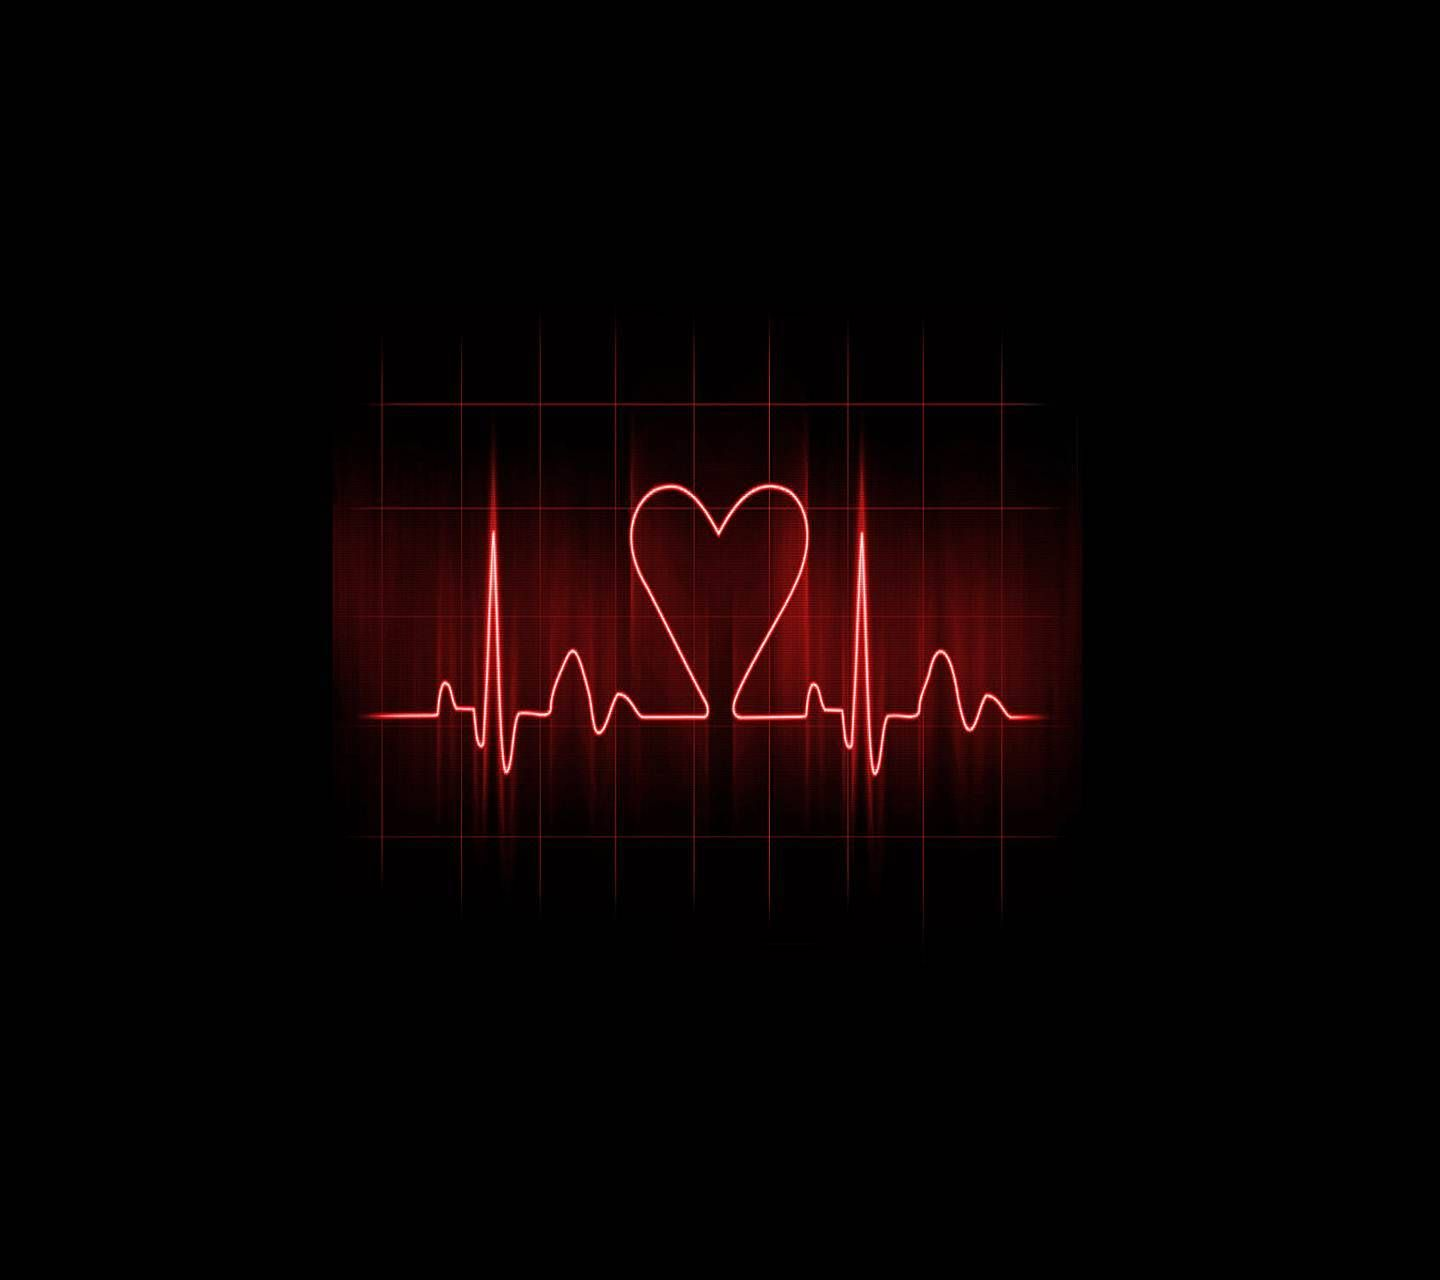 Heartbeat Wallpapers Top Free Heartbeat Backgrounds Wallpaperaccess